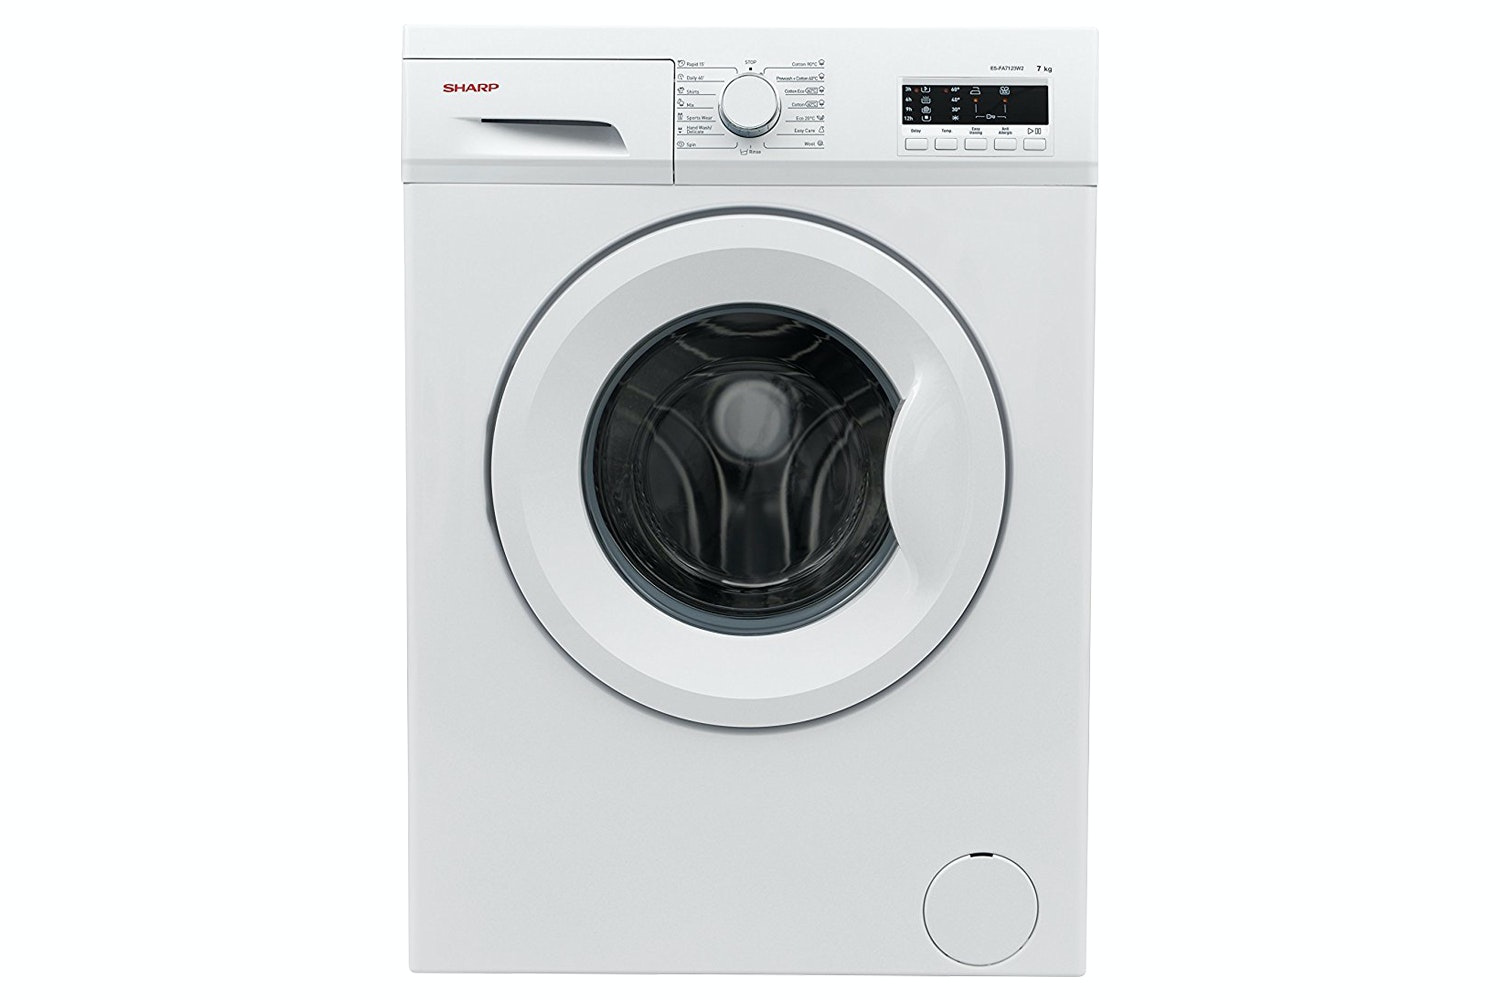 Sharp 7kg Freestanding Washing Machine | ESFA7123W2